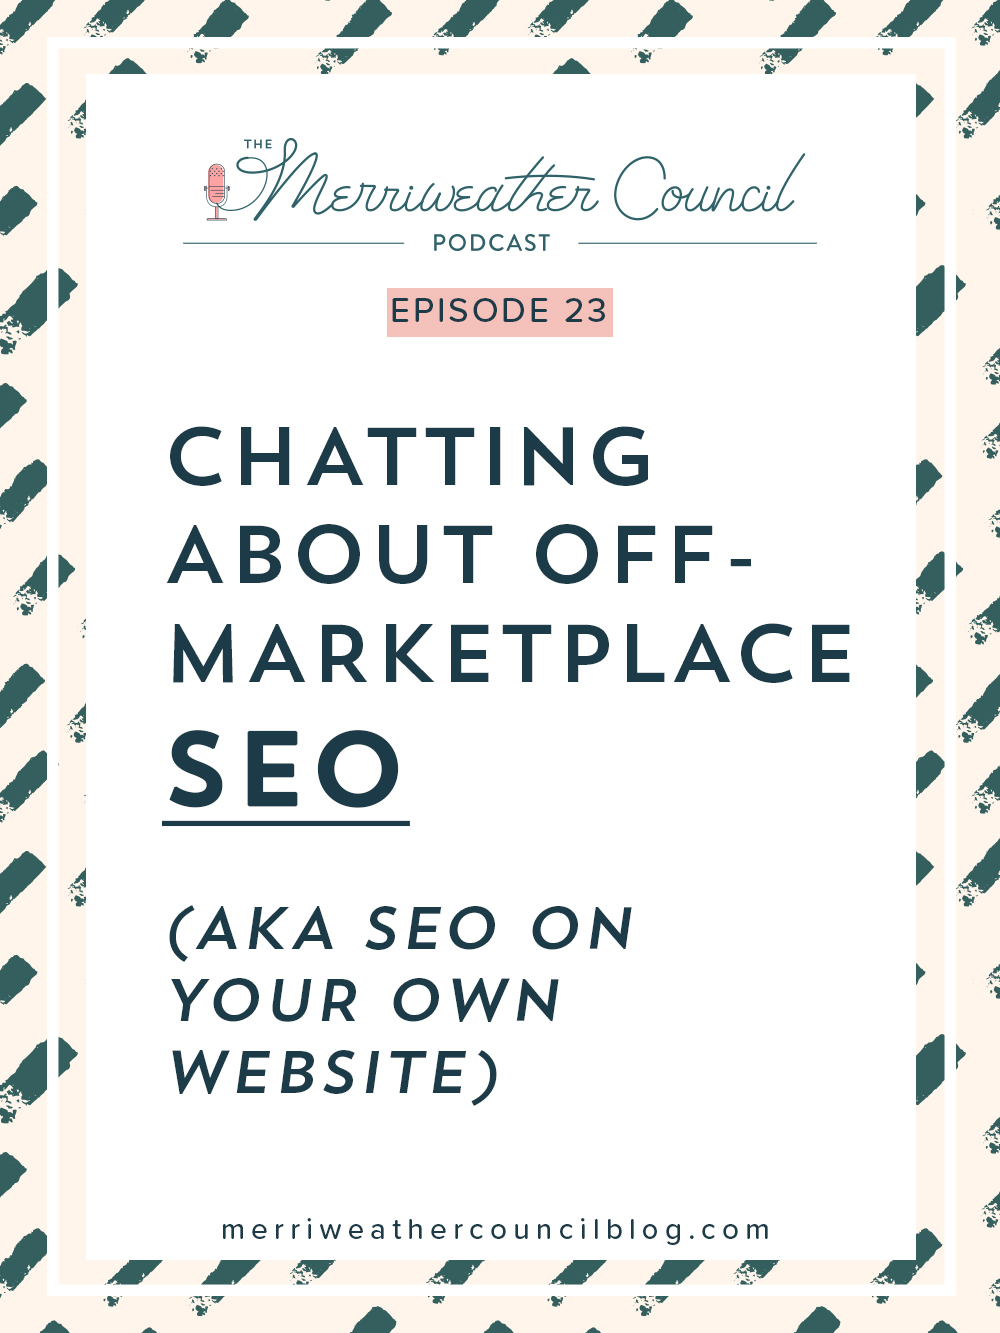 Episode 23: Chatting About Off-Marketplace SEO | The Merriweather Council Podcast